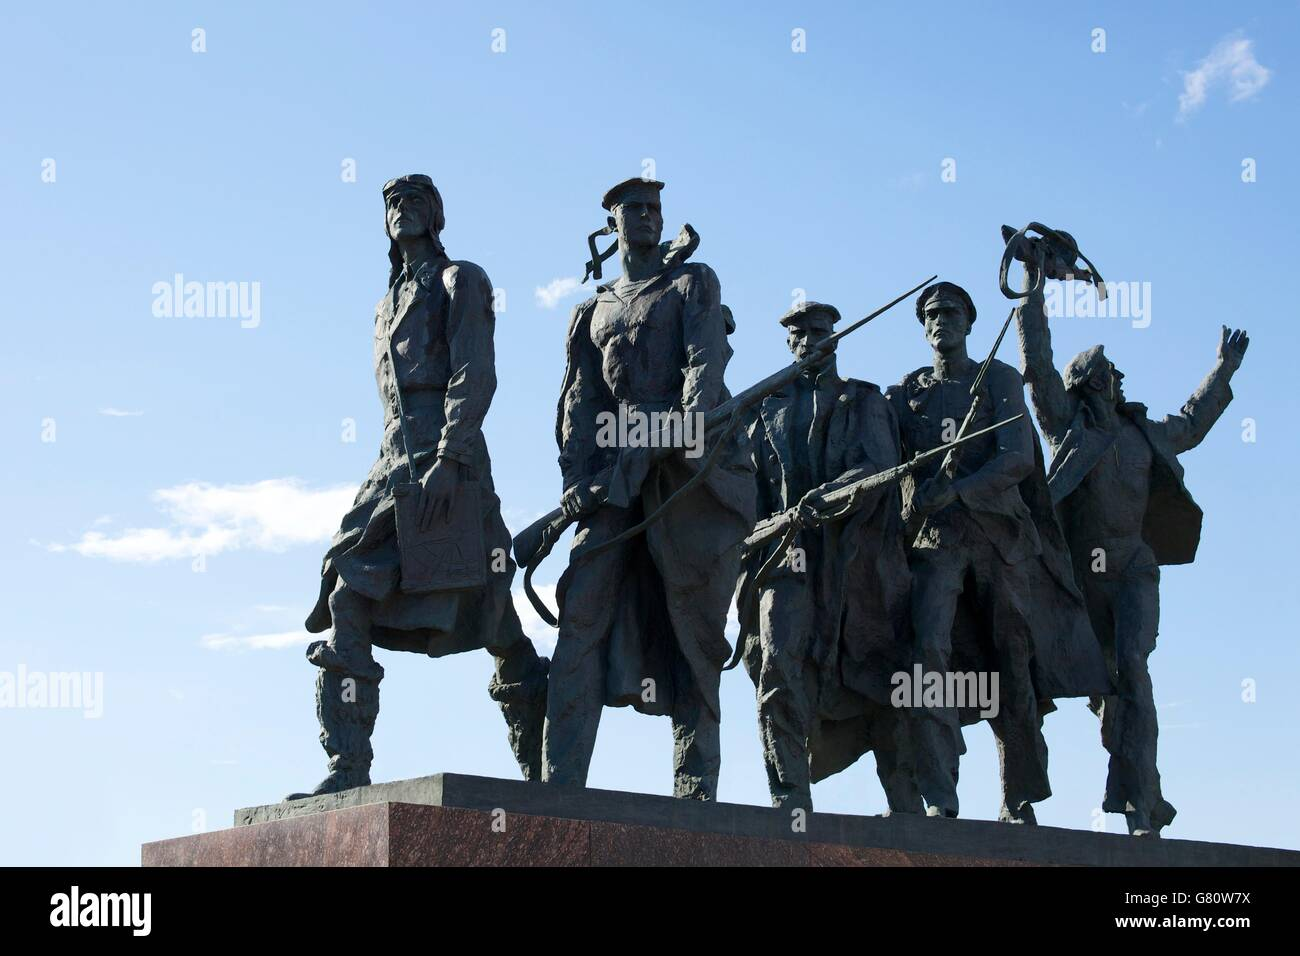 Sculpture of sailors and pilots, Monument to the Heroic Defenders of Leningrad, Victory Square, Ploshchad Pobedy, Stock Photo